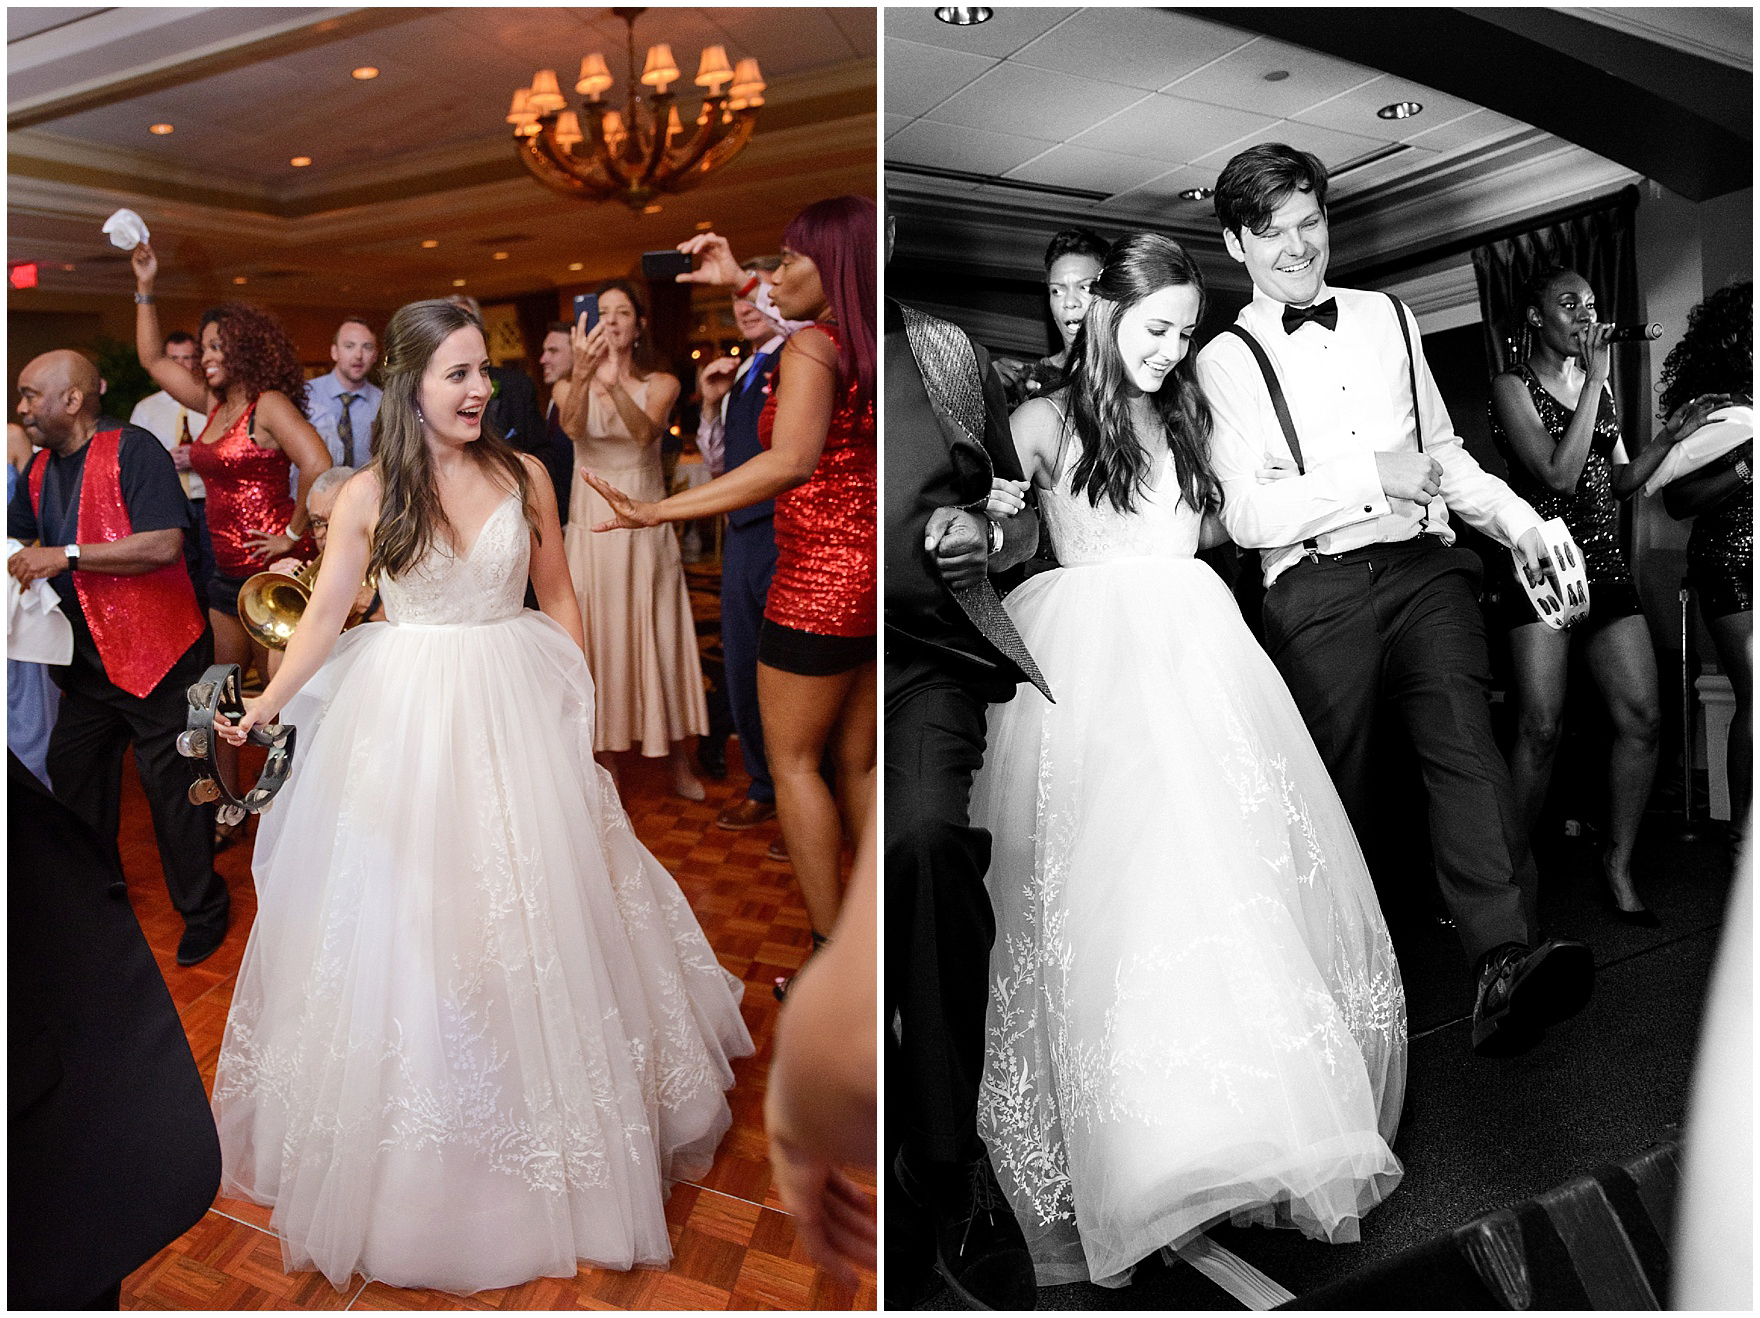 The bride and groom dance to the music of the Gentlemen of Leisure band at a Butterfield Country Club wedding.